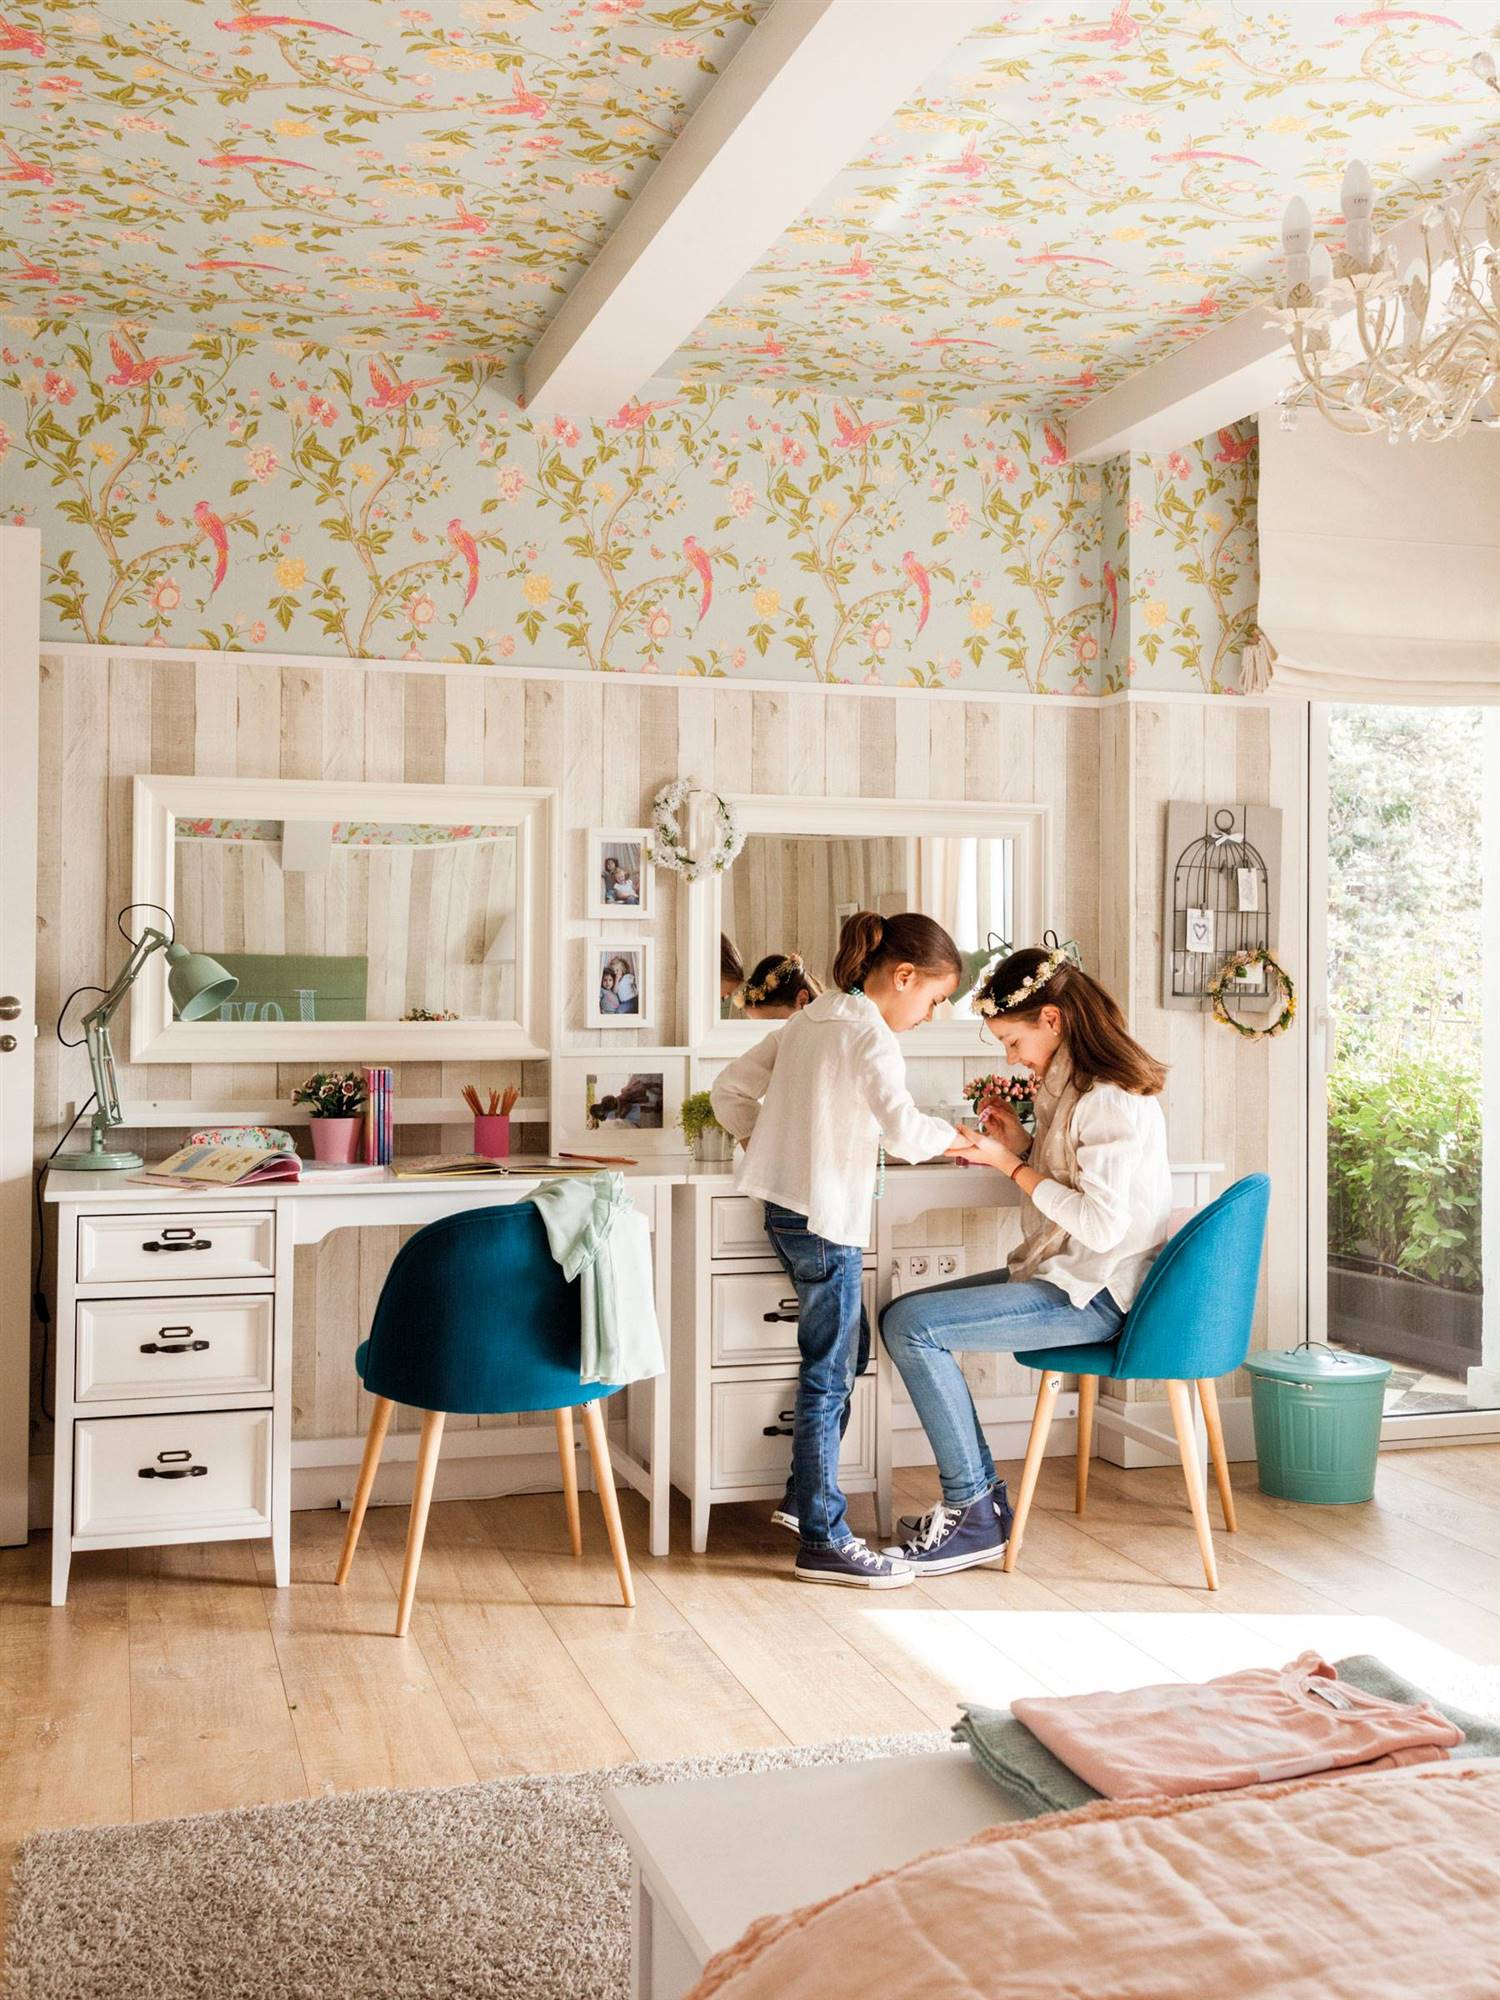 Tendencias Papel Pintado 2019 Tendencias De Decoración 2019